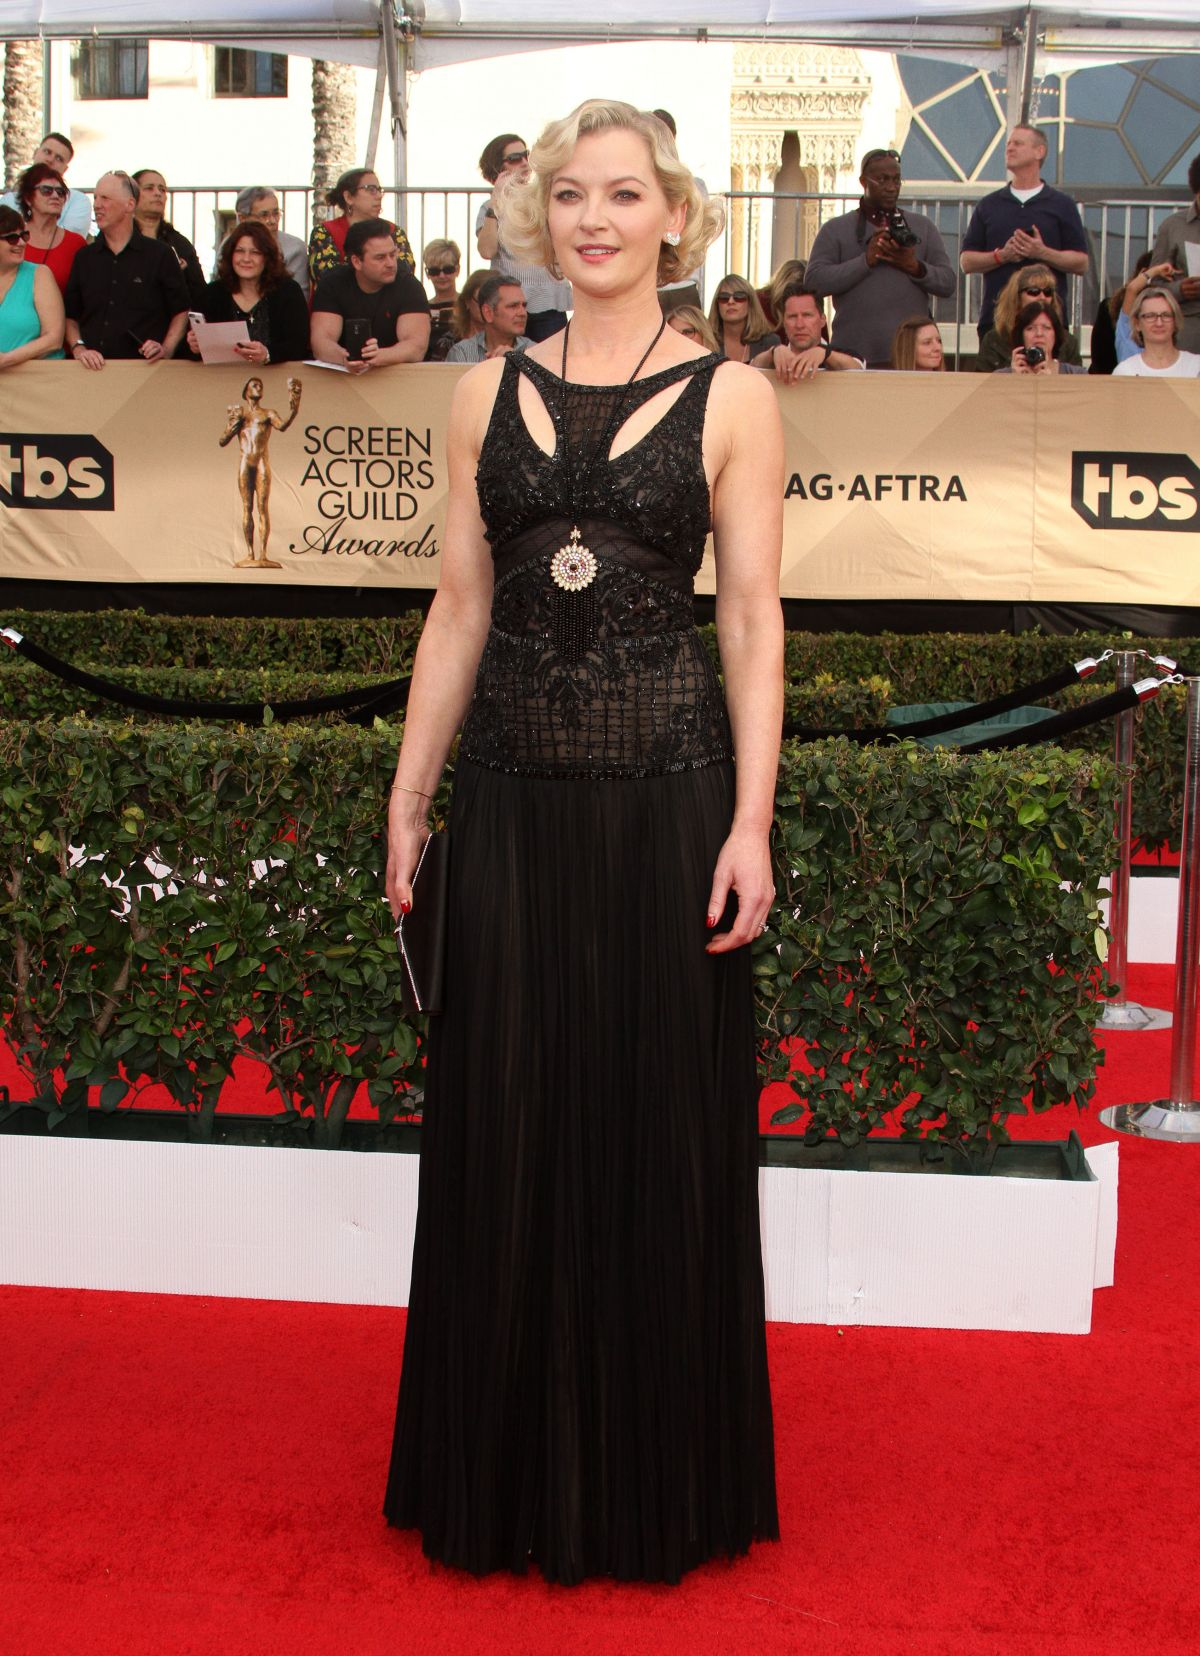 GRETCHEN MOL at 23rd Annual Screen Actors Guild Awards in Los Angeles 01/29/2017